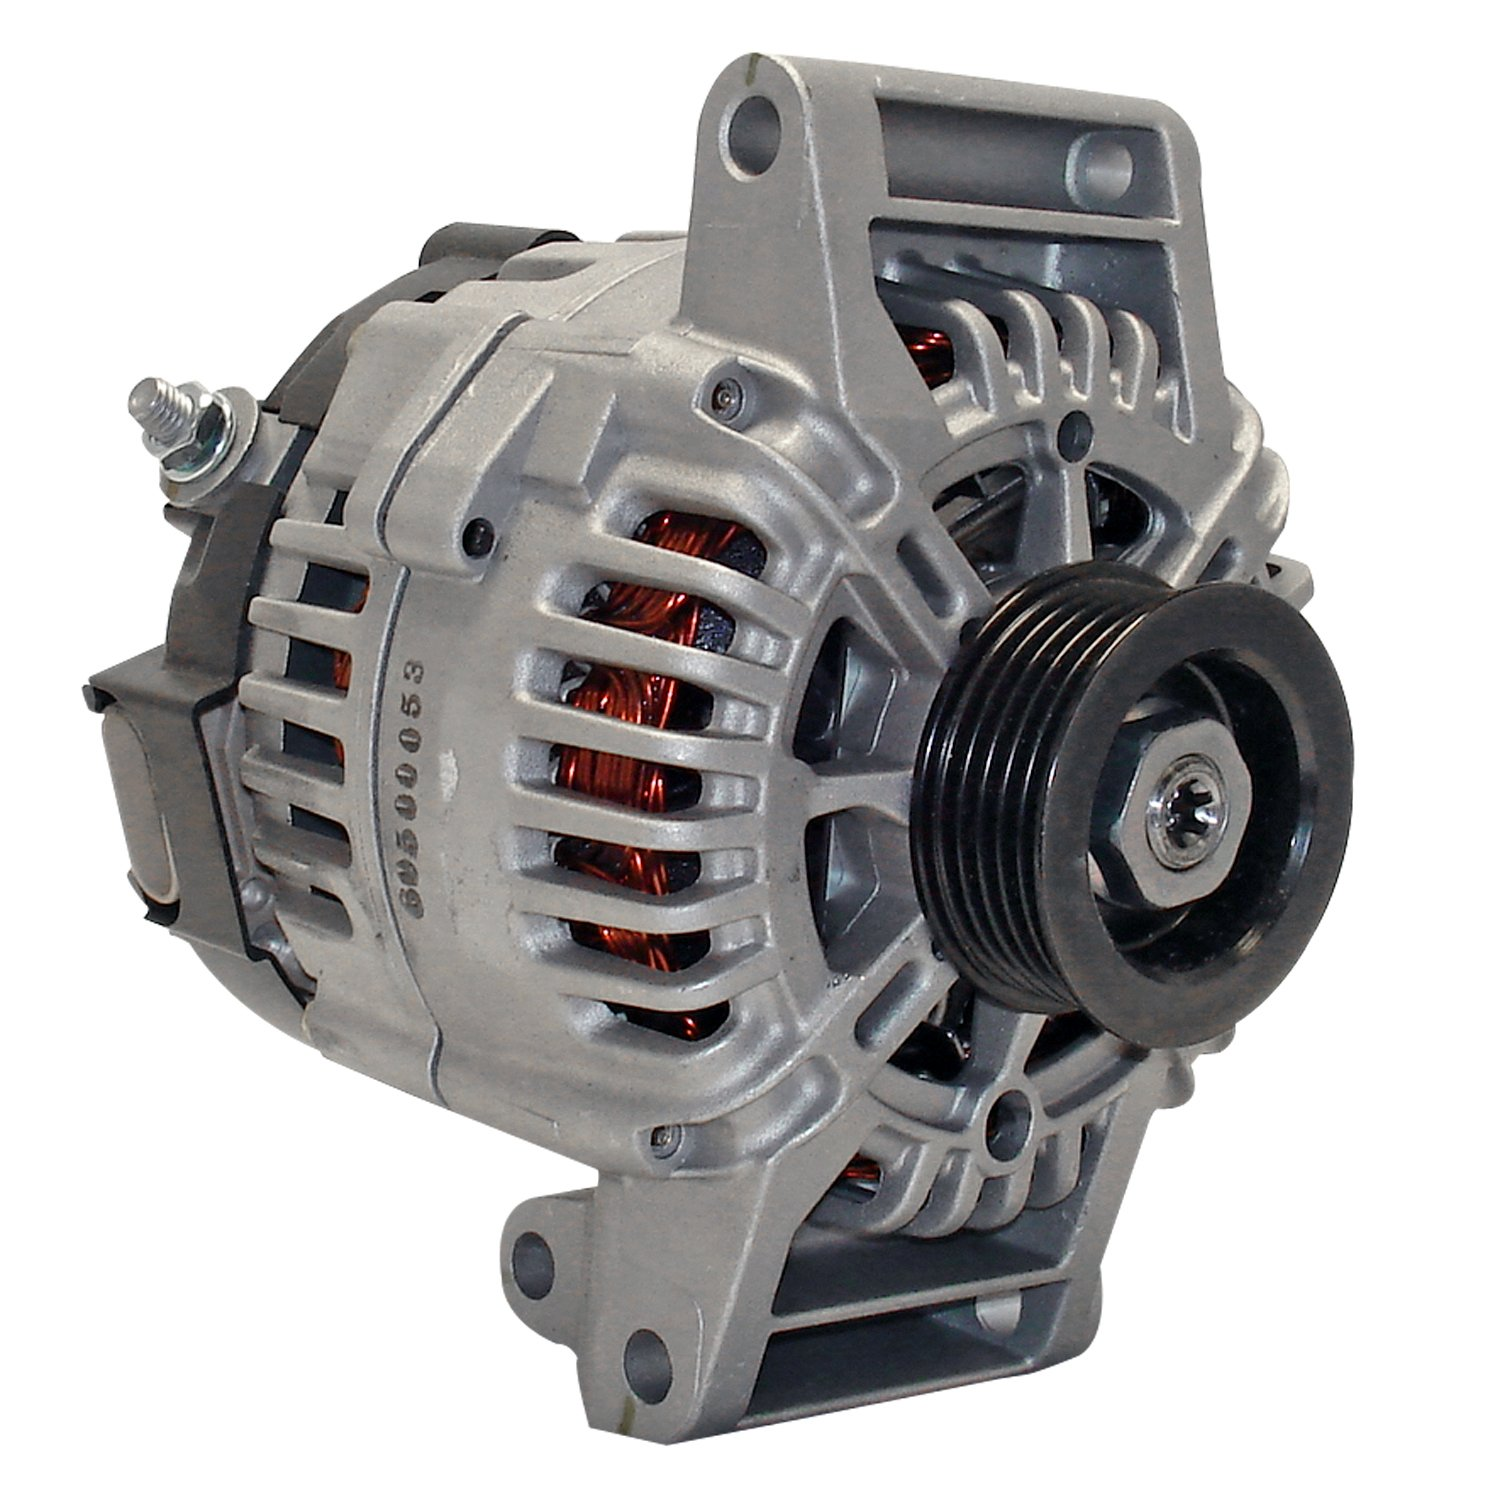 ACDelco 334-1468A Professional Alternator, Remanufactured by ACDelco